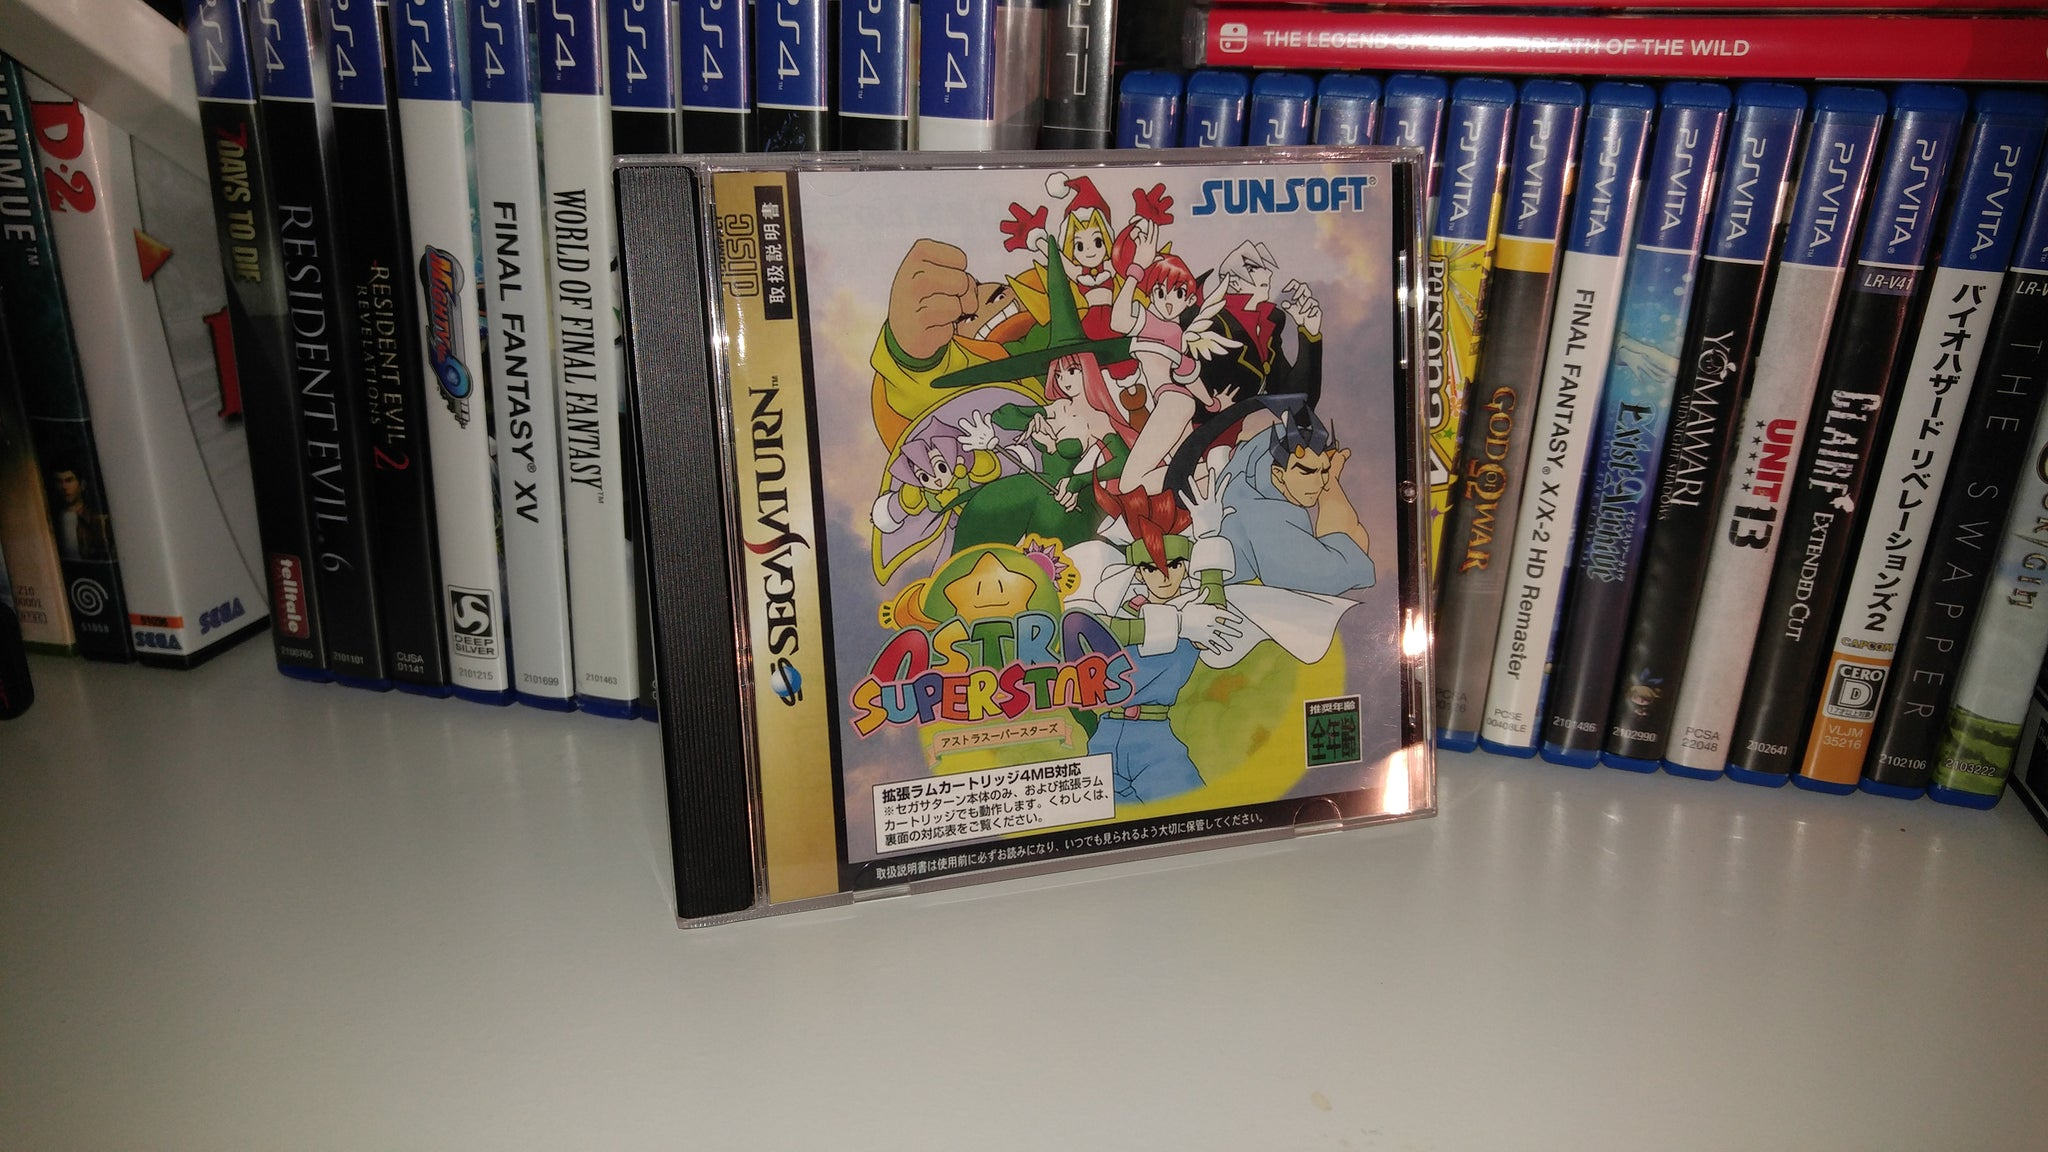 Astra Superstars Sega Saturn reproduction